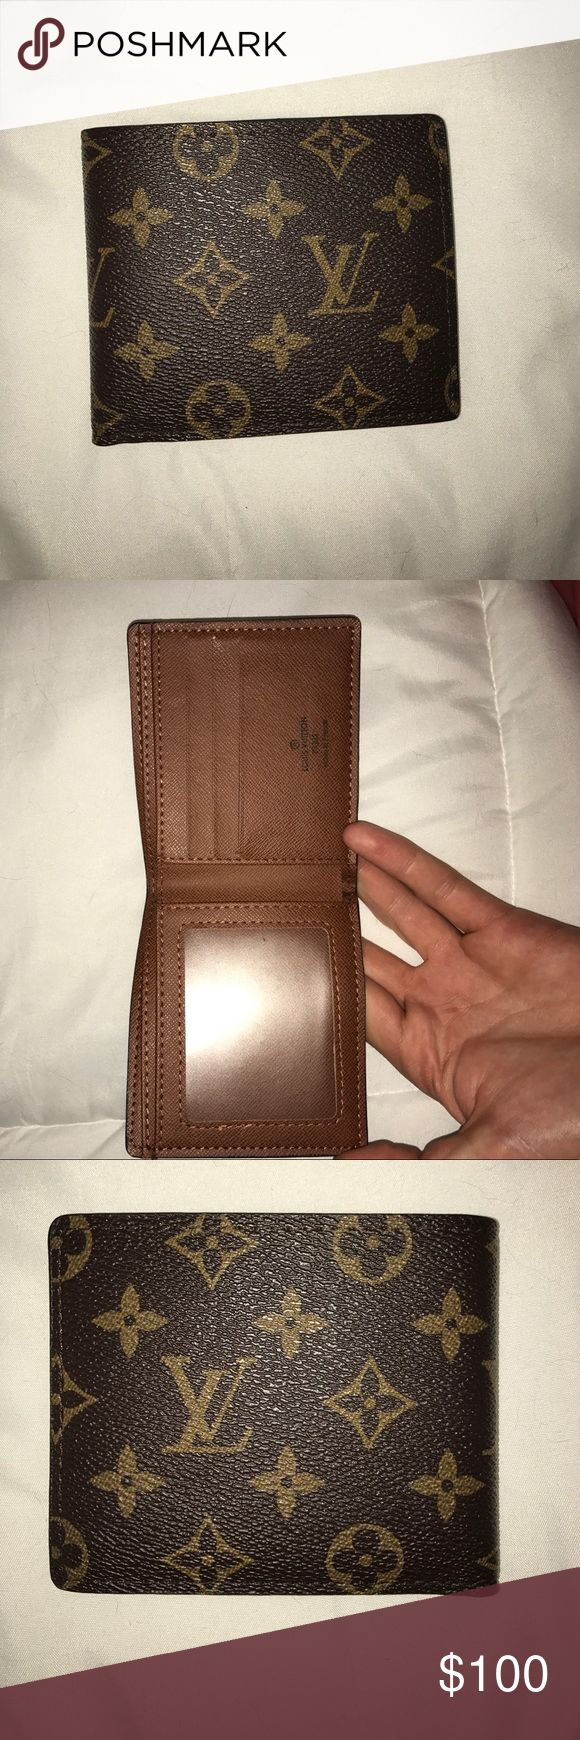 Louis Vuitton Men's Bi-Fold Wallet Mens Louis Vuitton Bi-Fold Wallet (willing to negotiate) Louis Vuitton Other